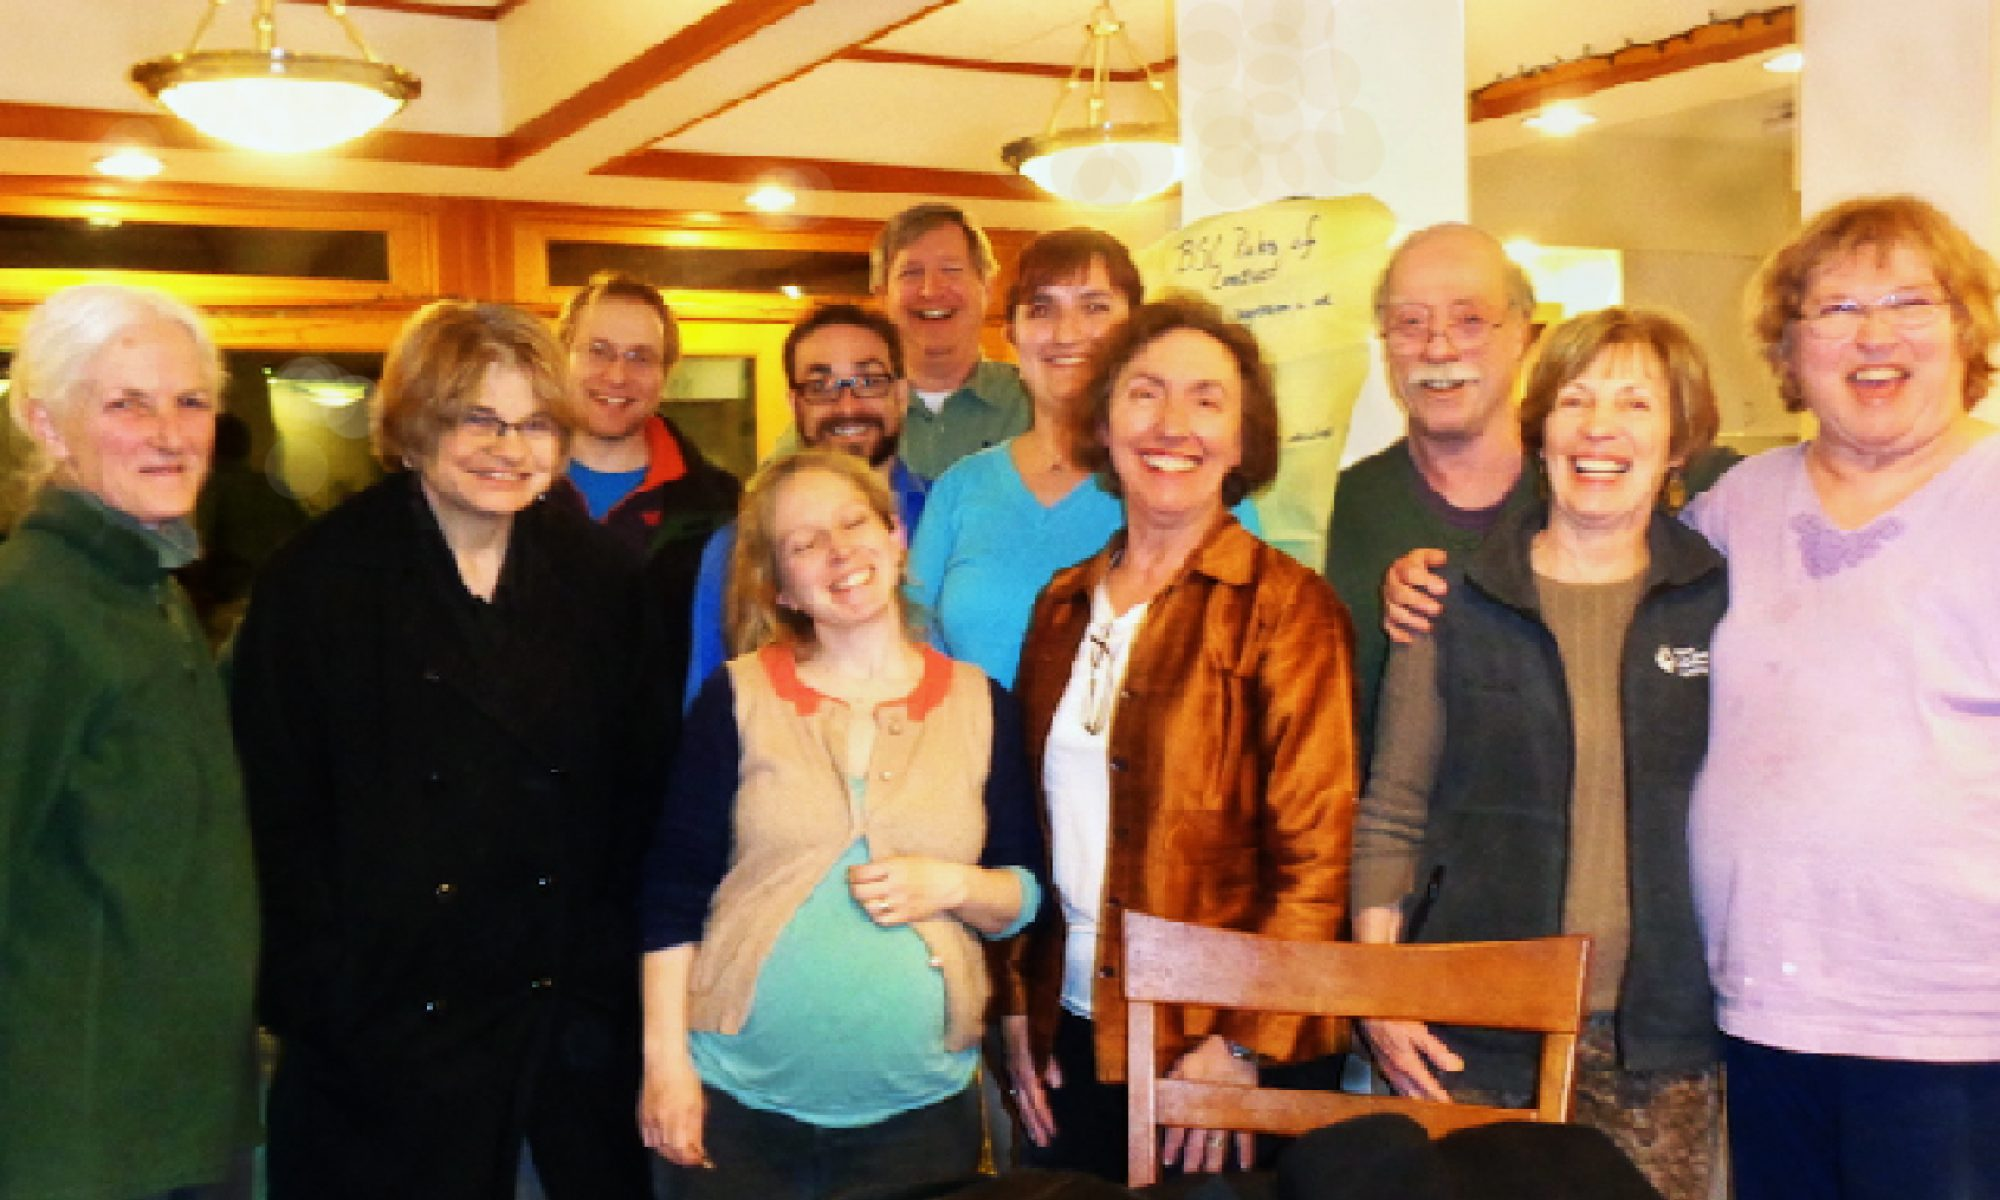 A group photo taken at Cornerstone Cohousing